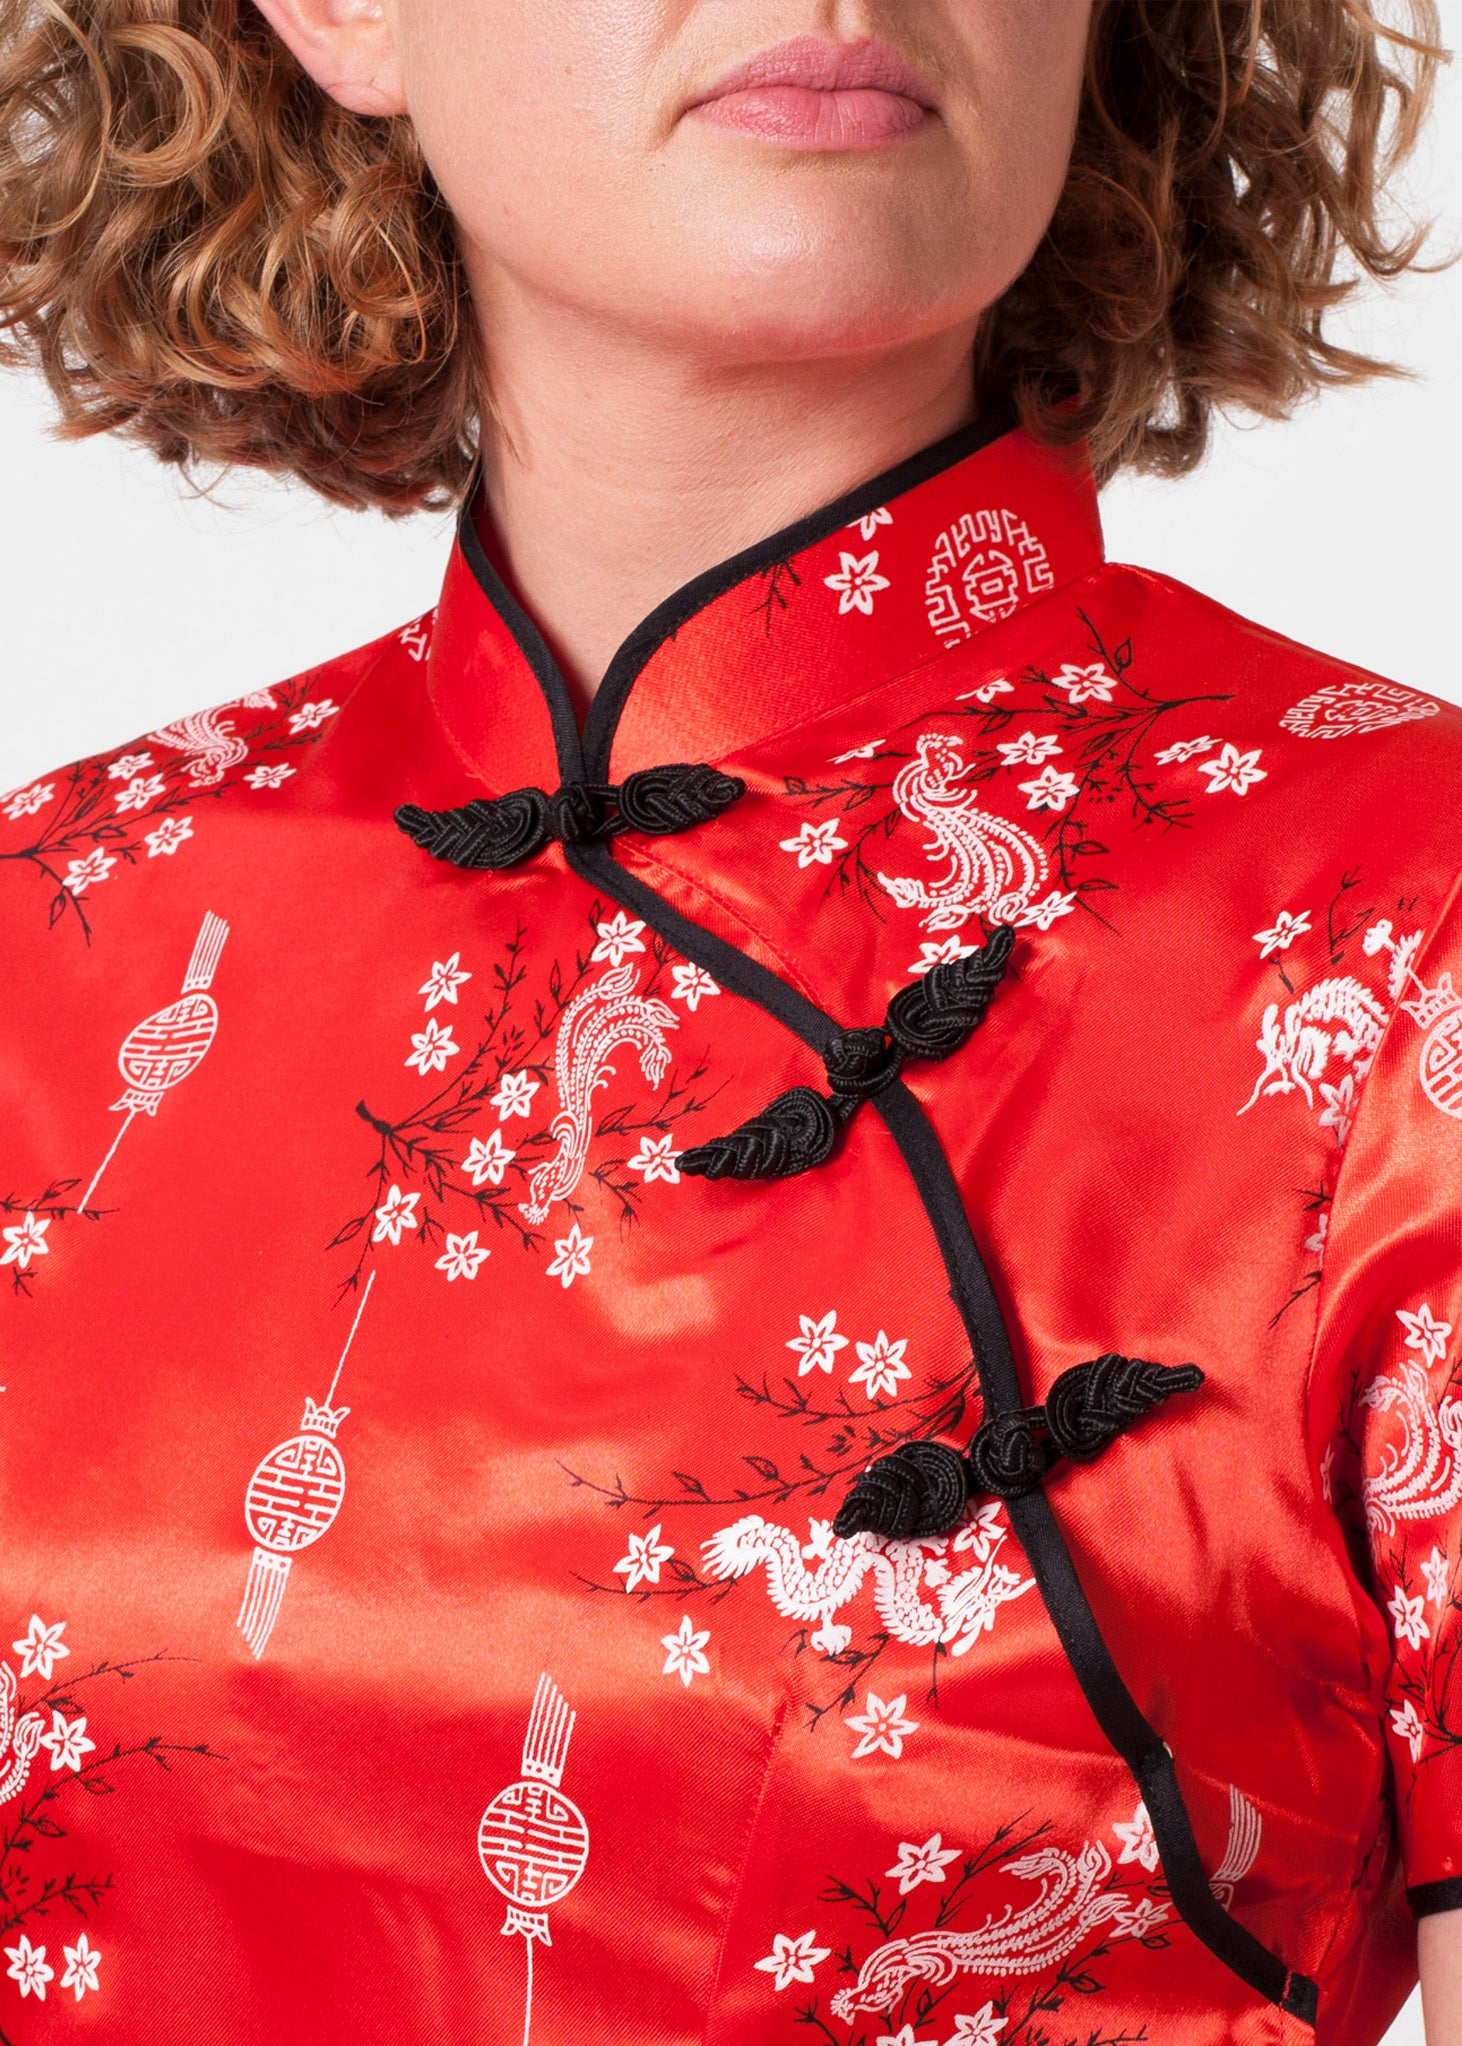 Bound edge mandarin collar and aysmmetric fastening which closes with contrasting flower and knot frog fastenings